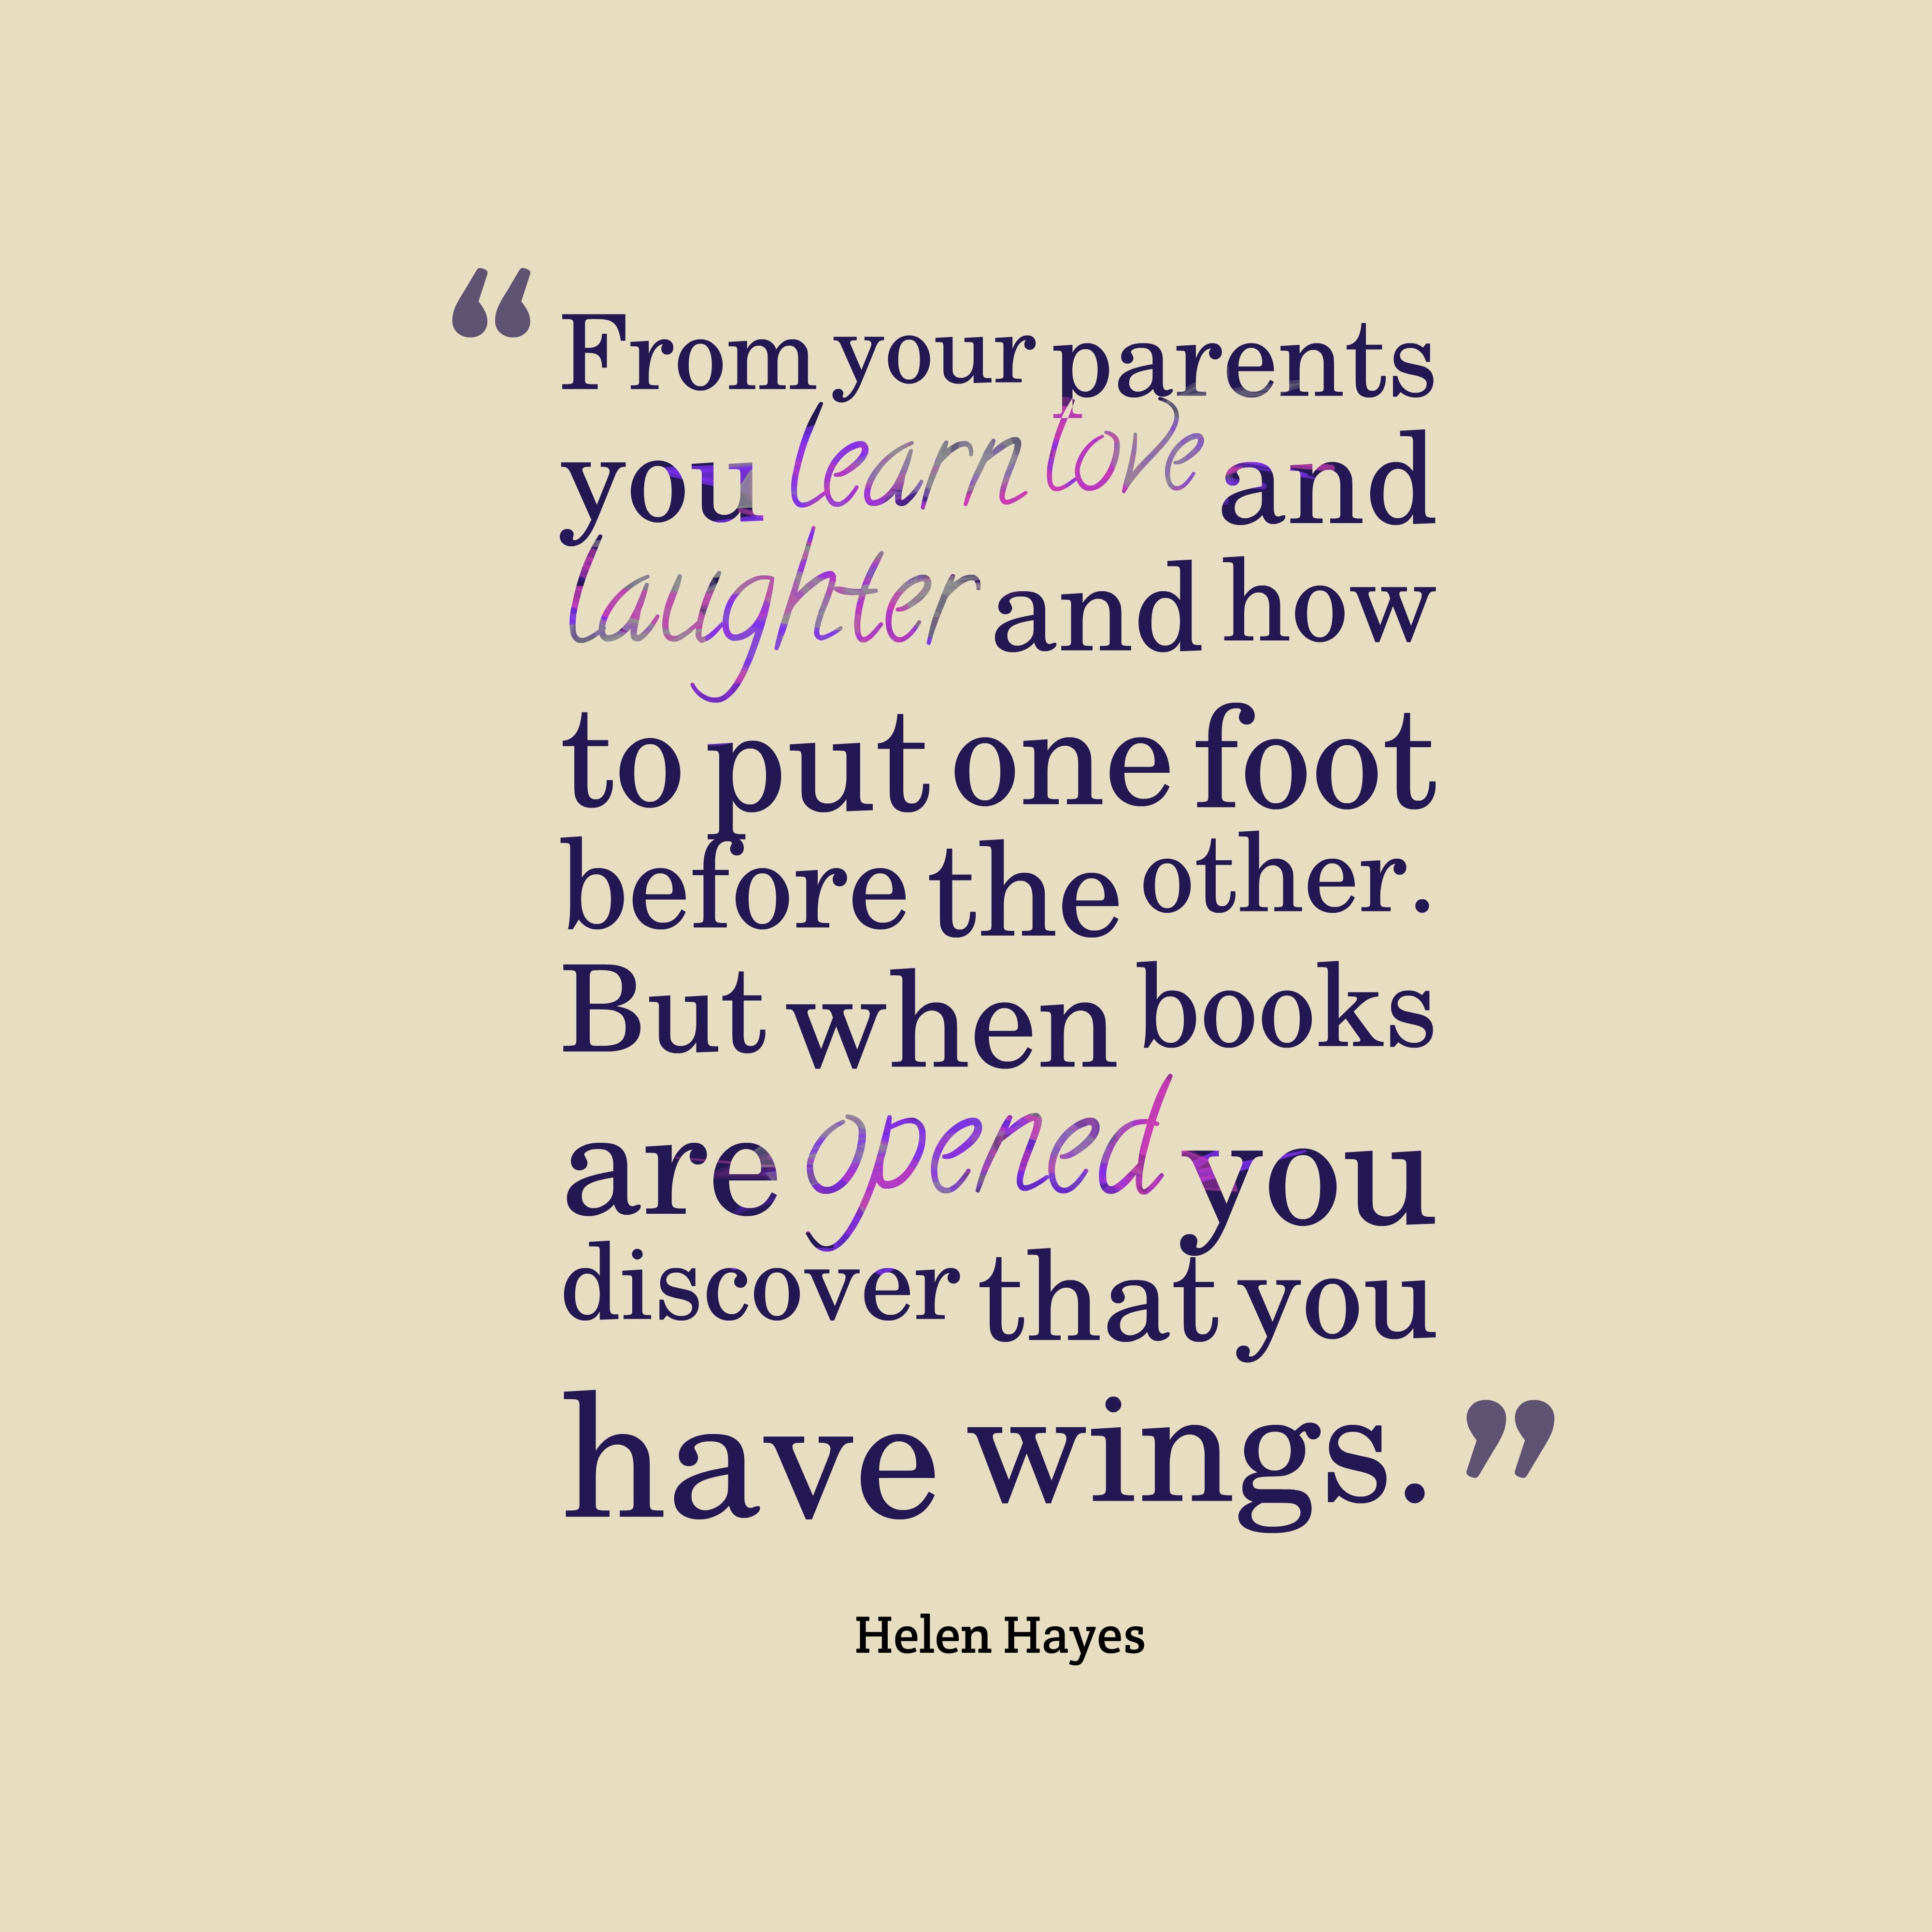 Images Of Love Your Parents Hd You Love Your Parents Quotes Quote Addicts Intended Fo Love Your Parents Quotes Love Parents Quotes Daily Inspiration Quotes